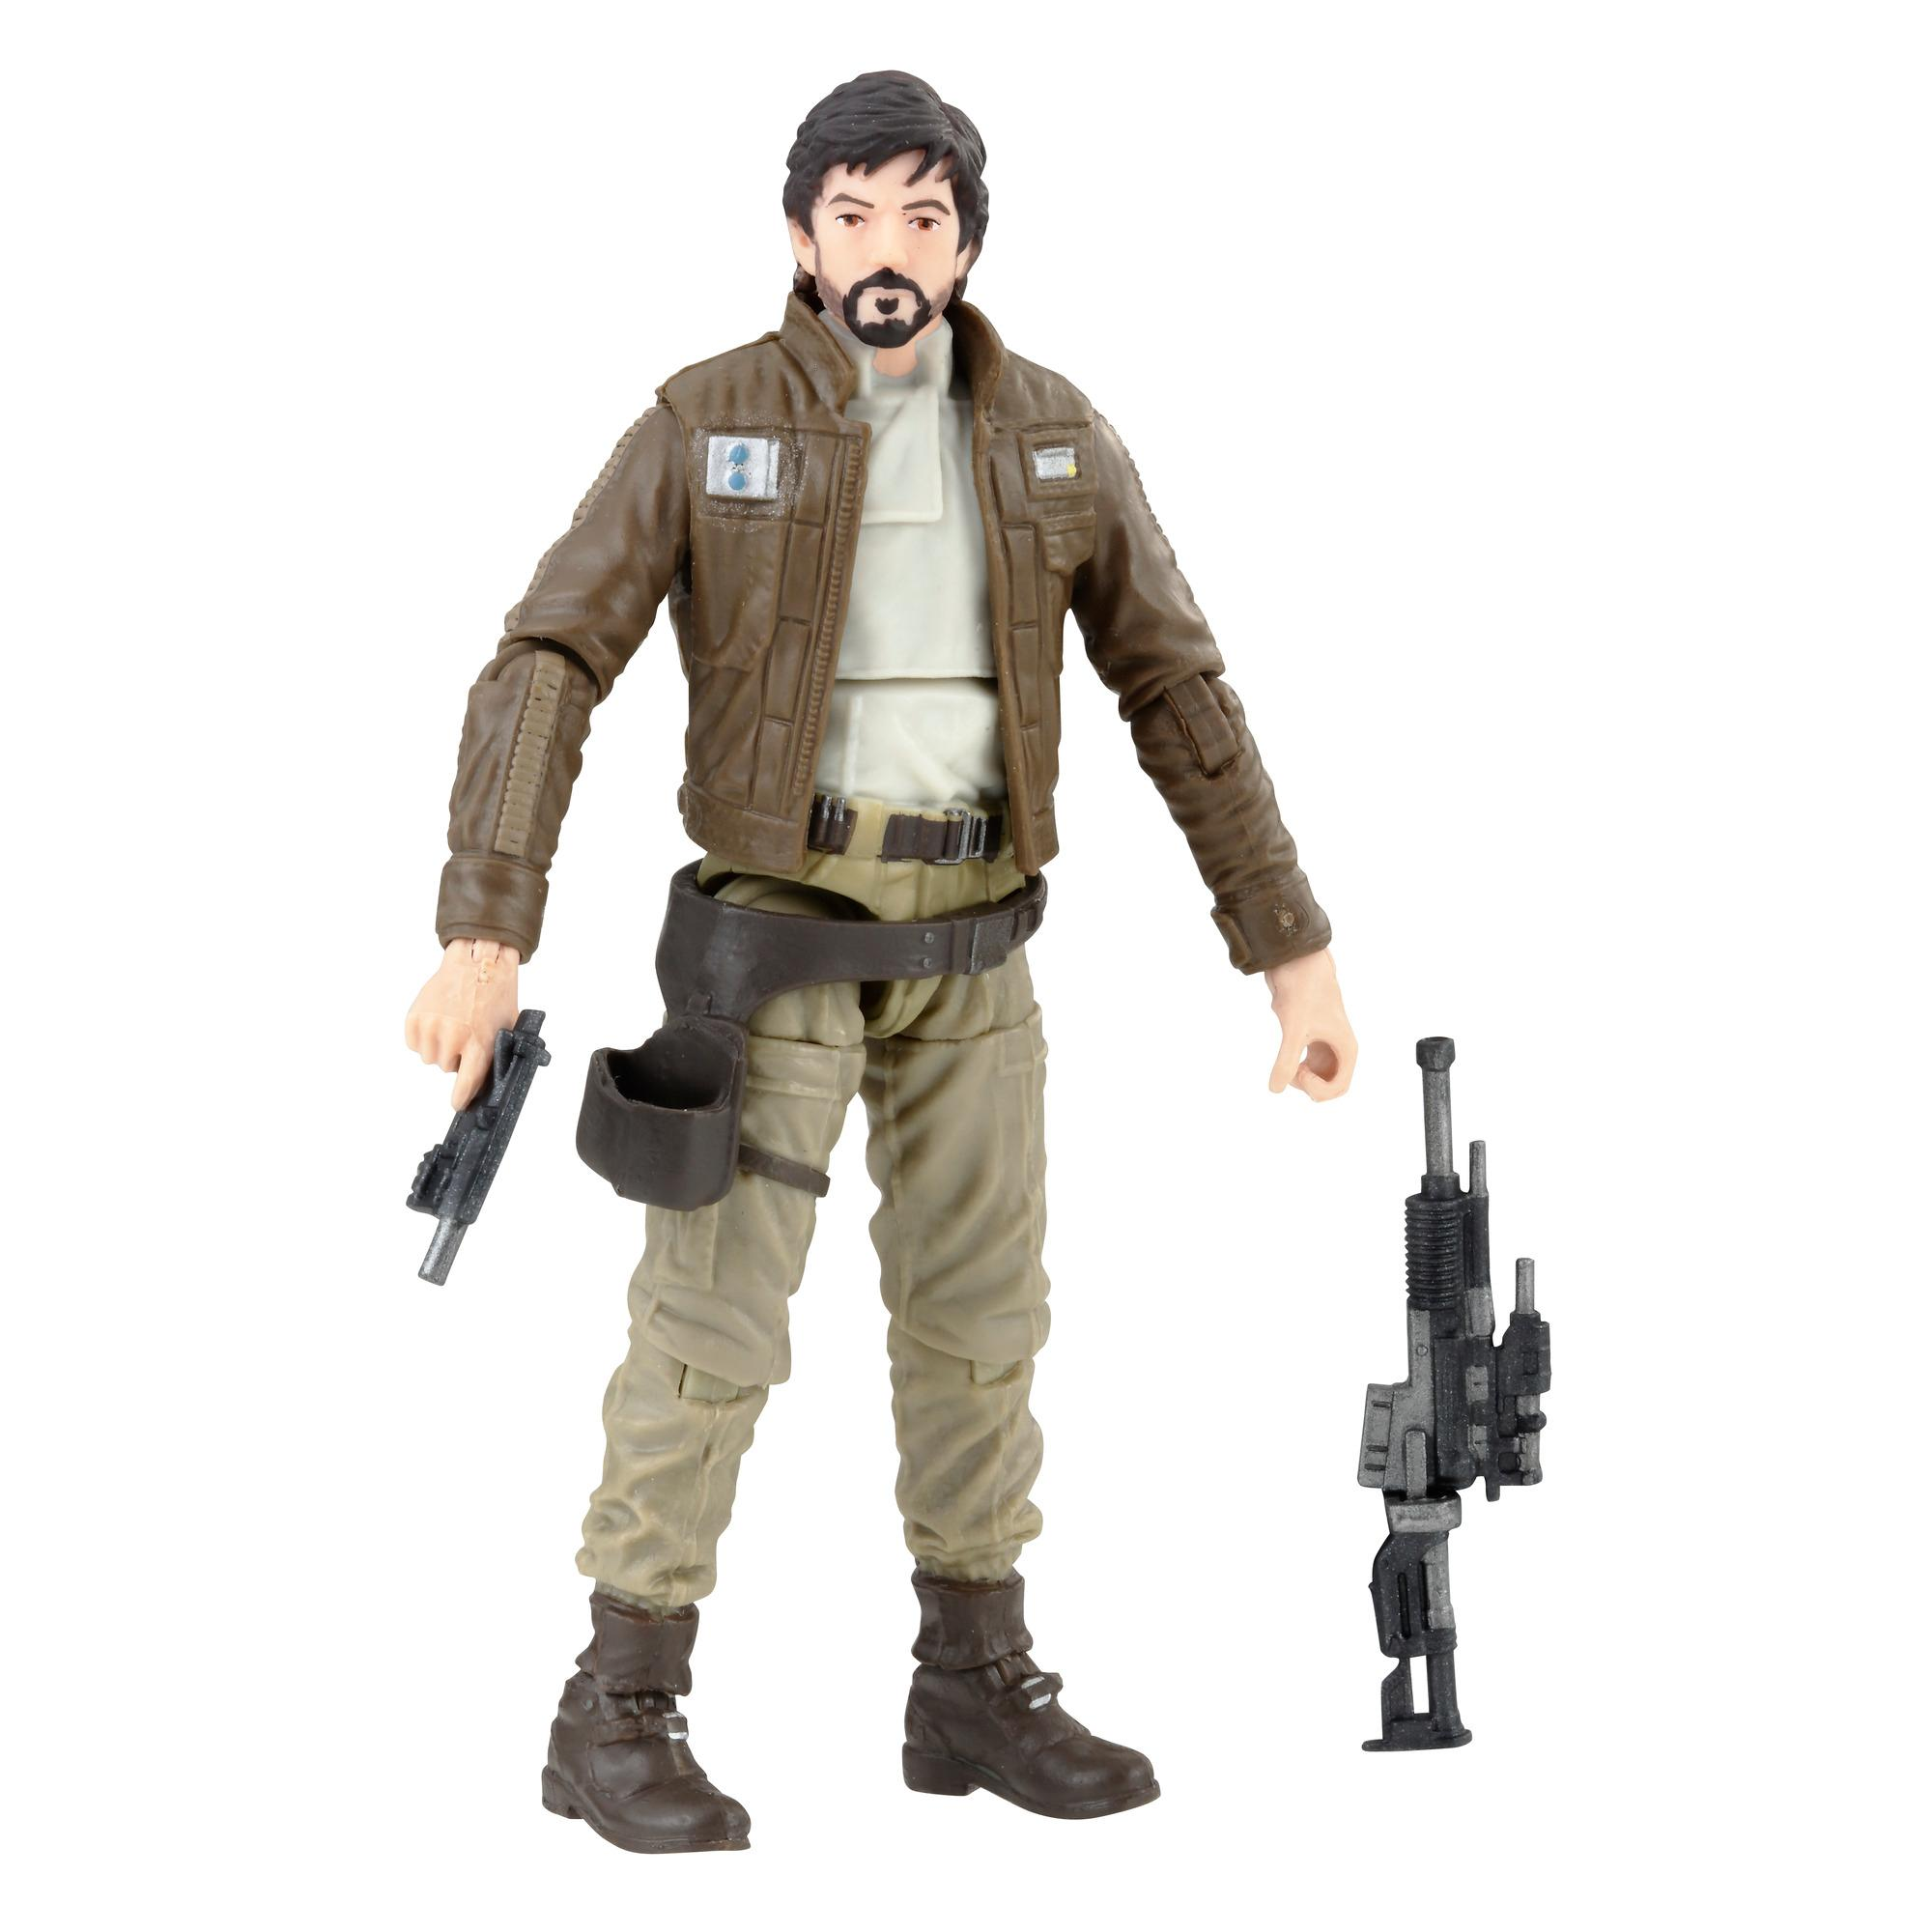 Star Wars The Vintage Collection Captain Cassian Andor 3.75-inch Figure